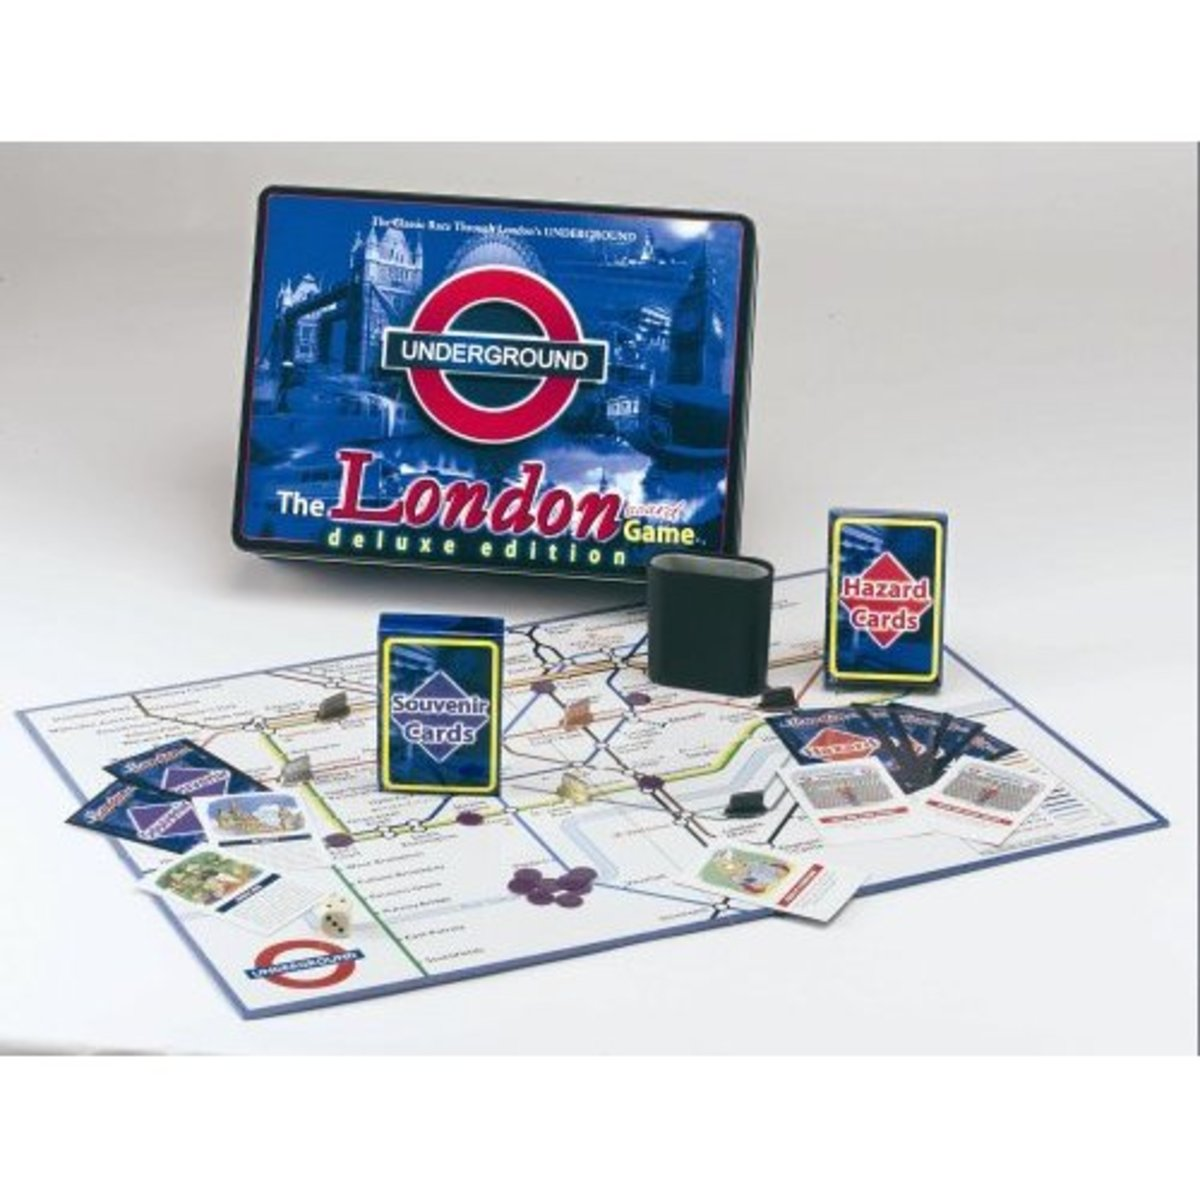 the-london-game-rules-for-the-board-game-based-on-the-london-underground